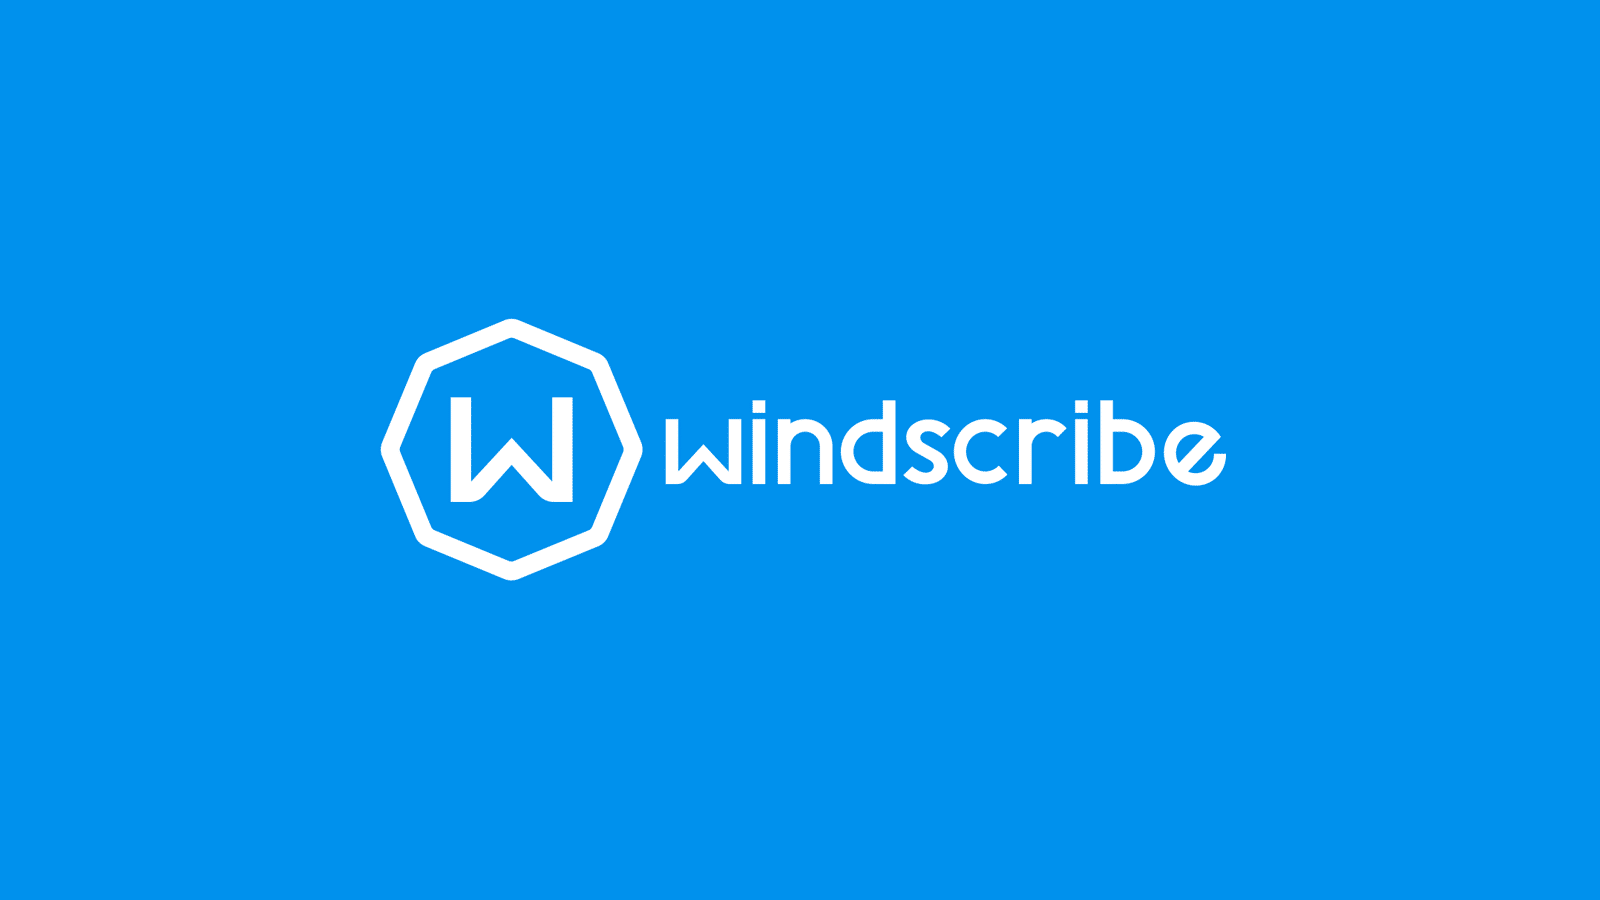 Windscribe 10GB Data per month